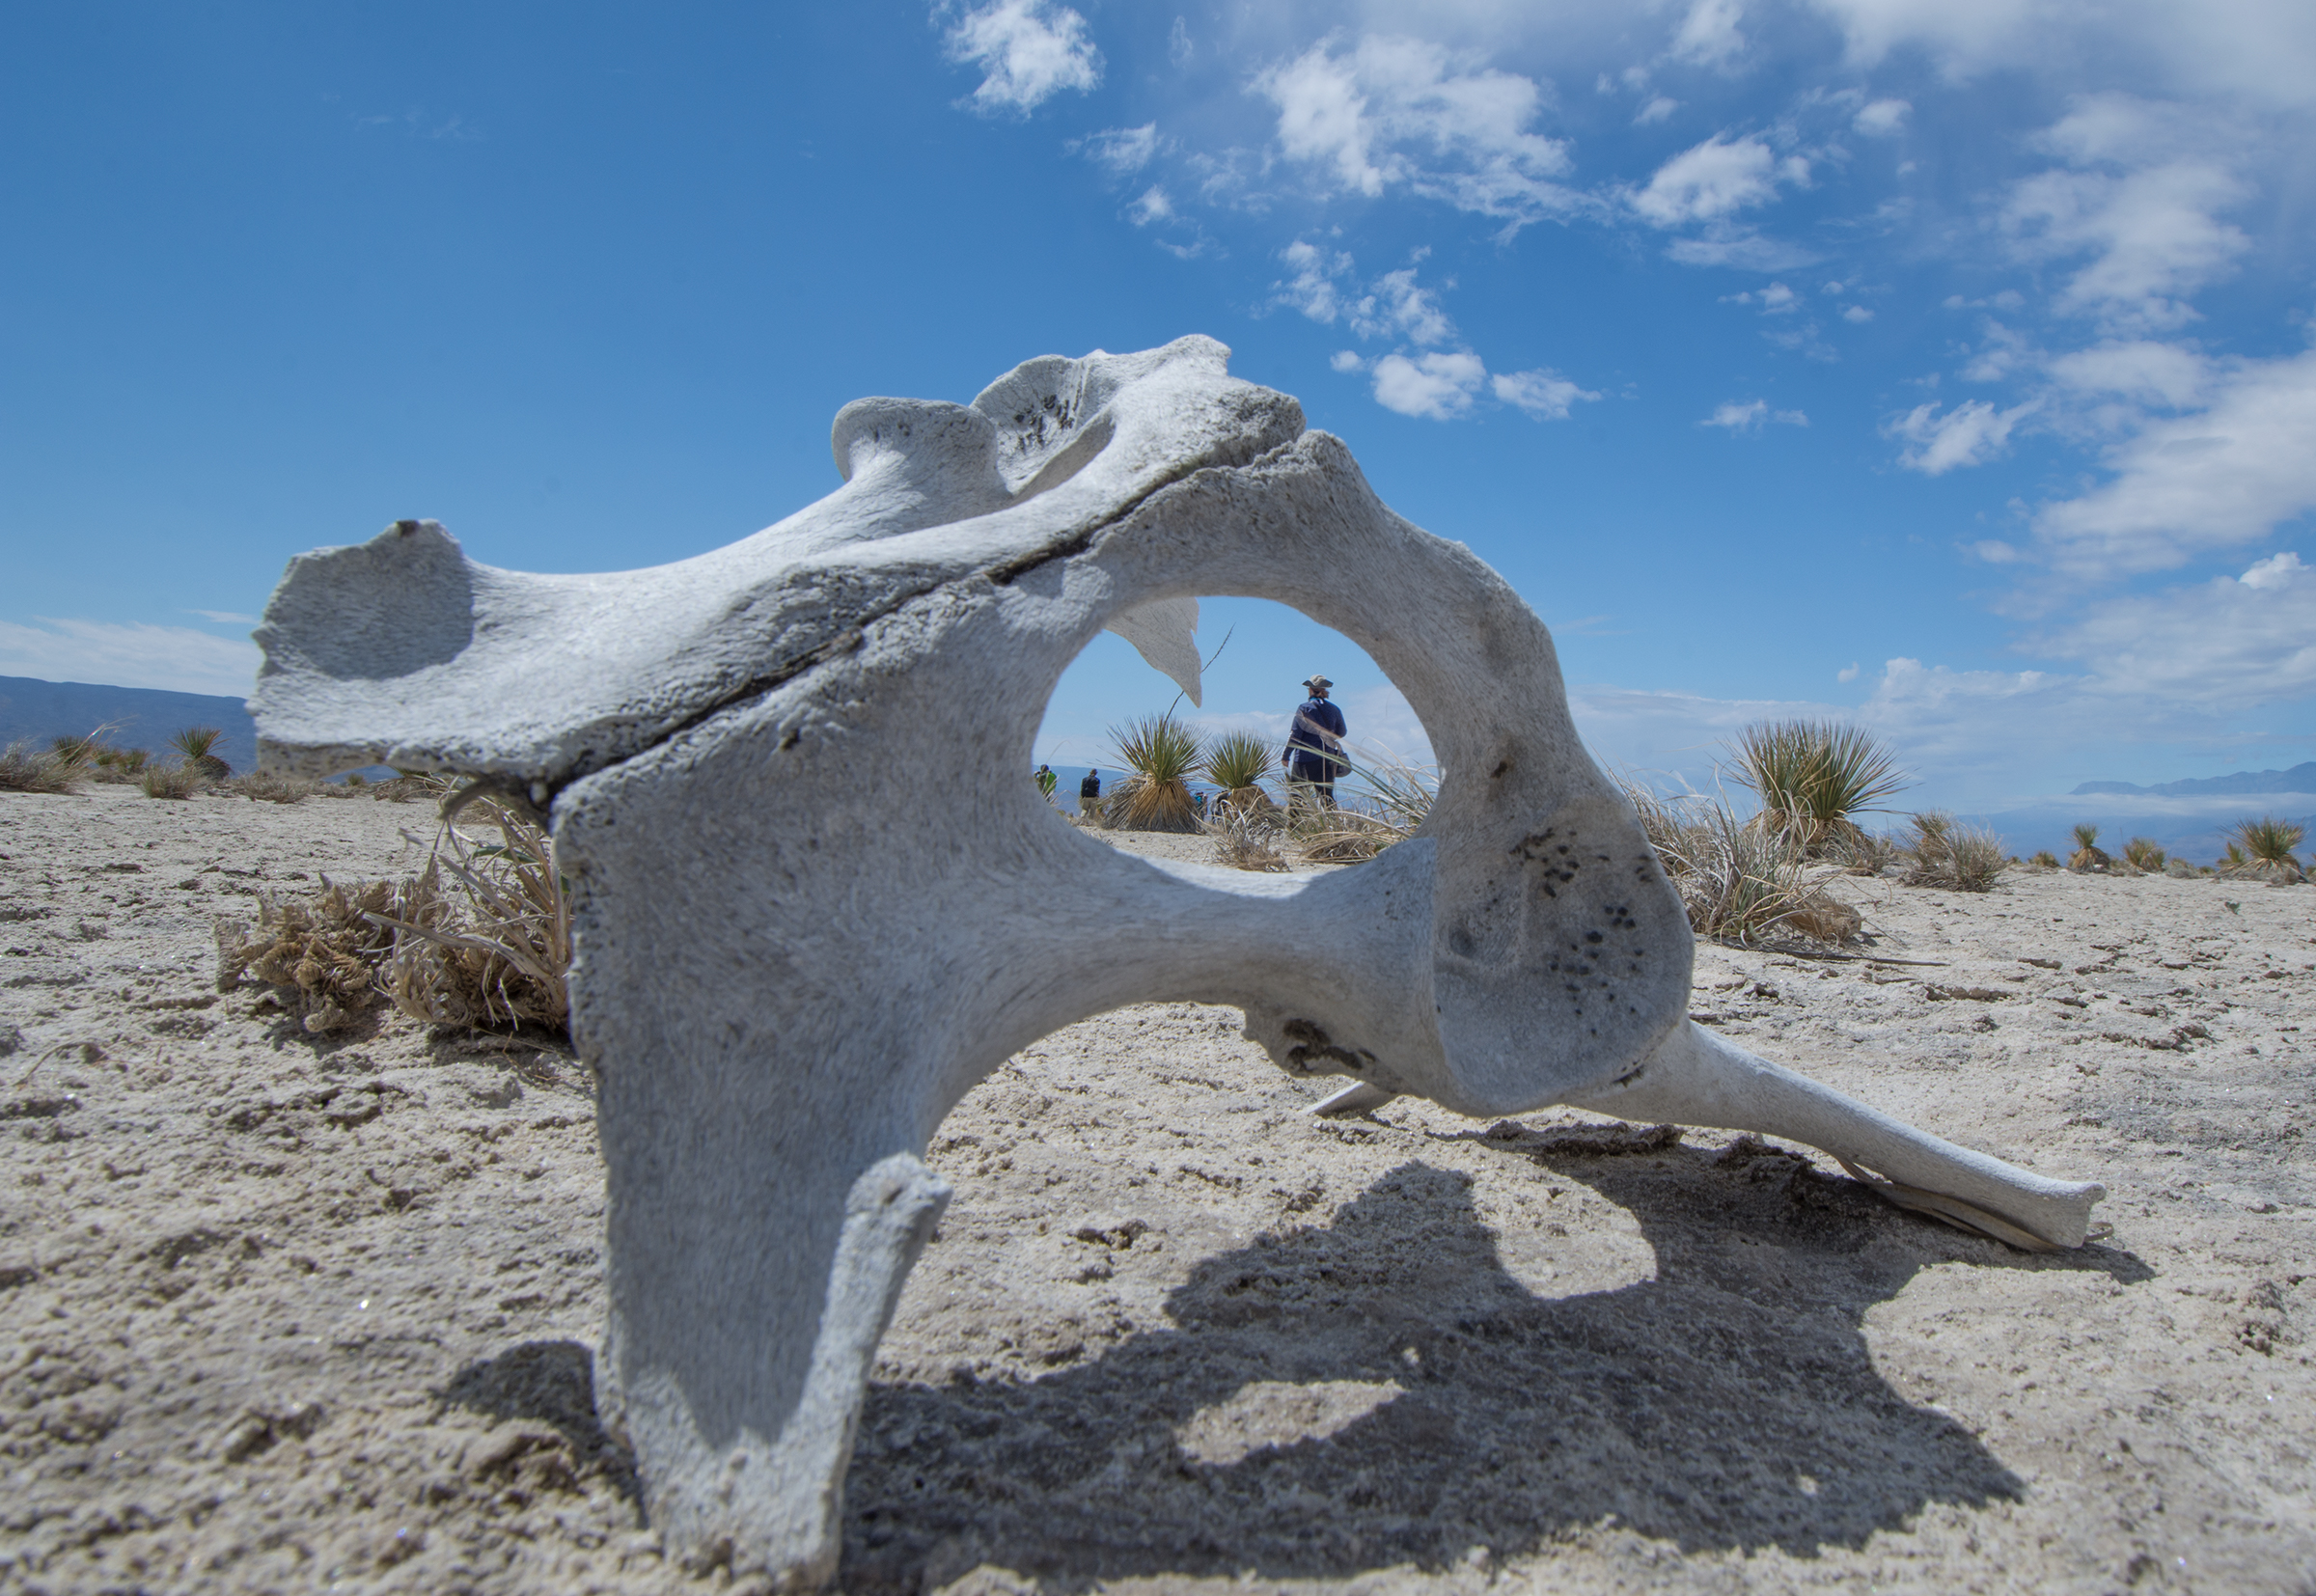 A researcher is seen through the bleached bones of a large mammal.